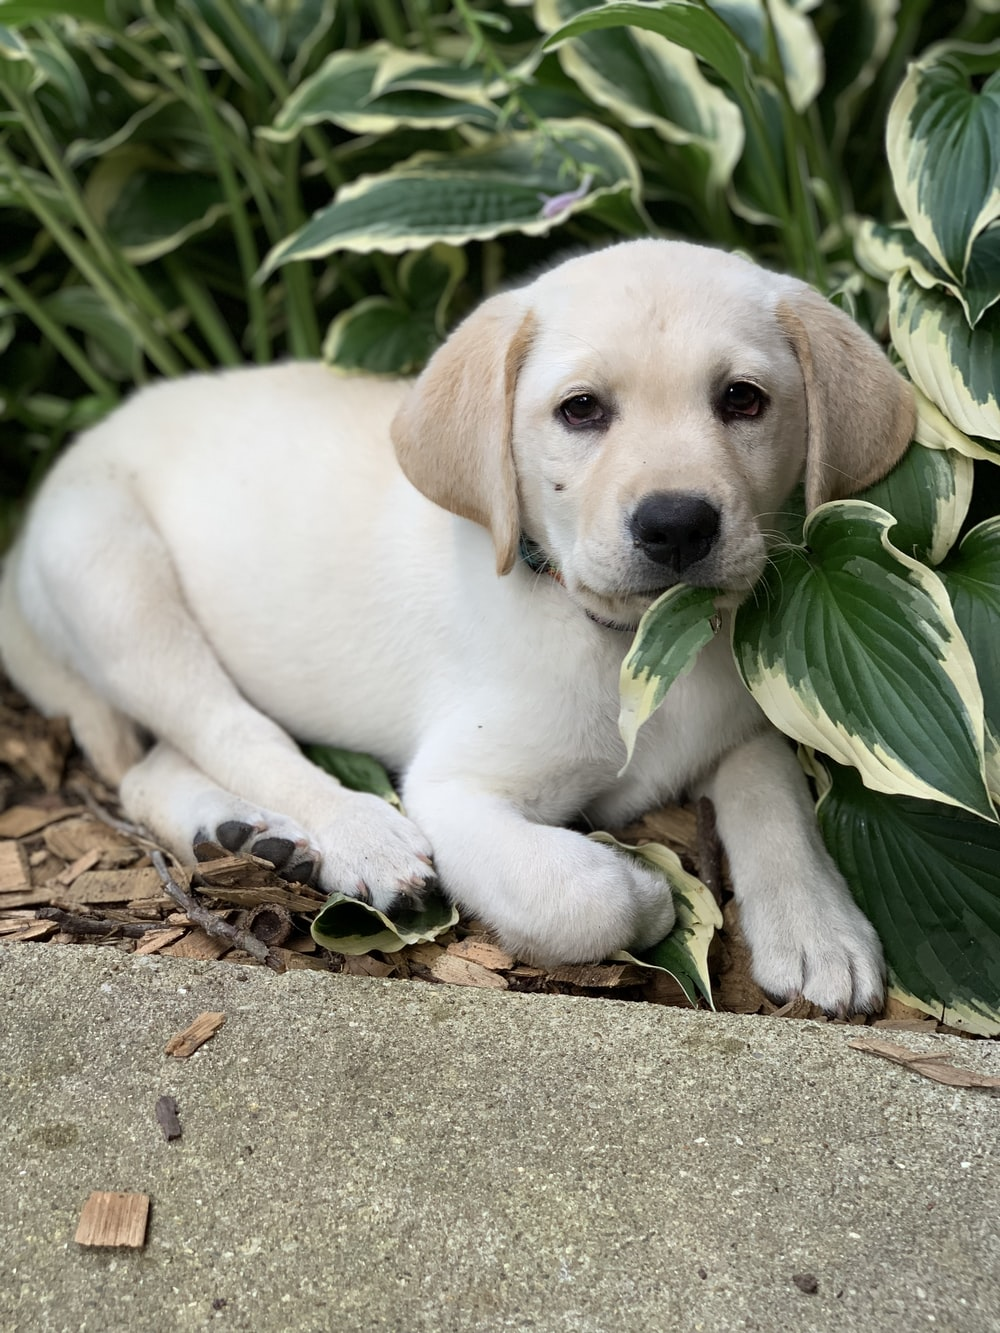 beige and white puppy near plant